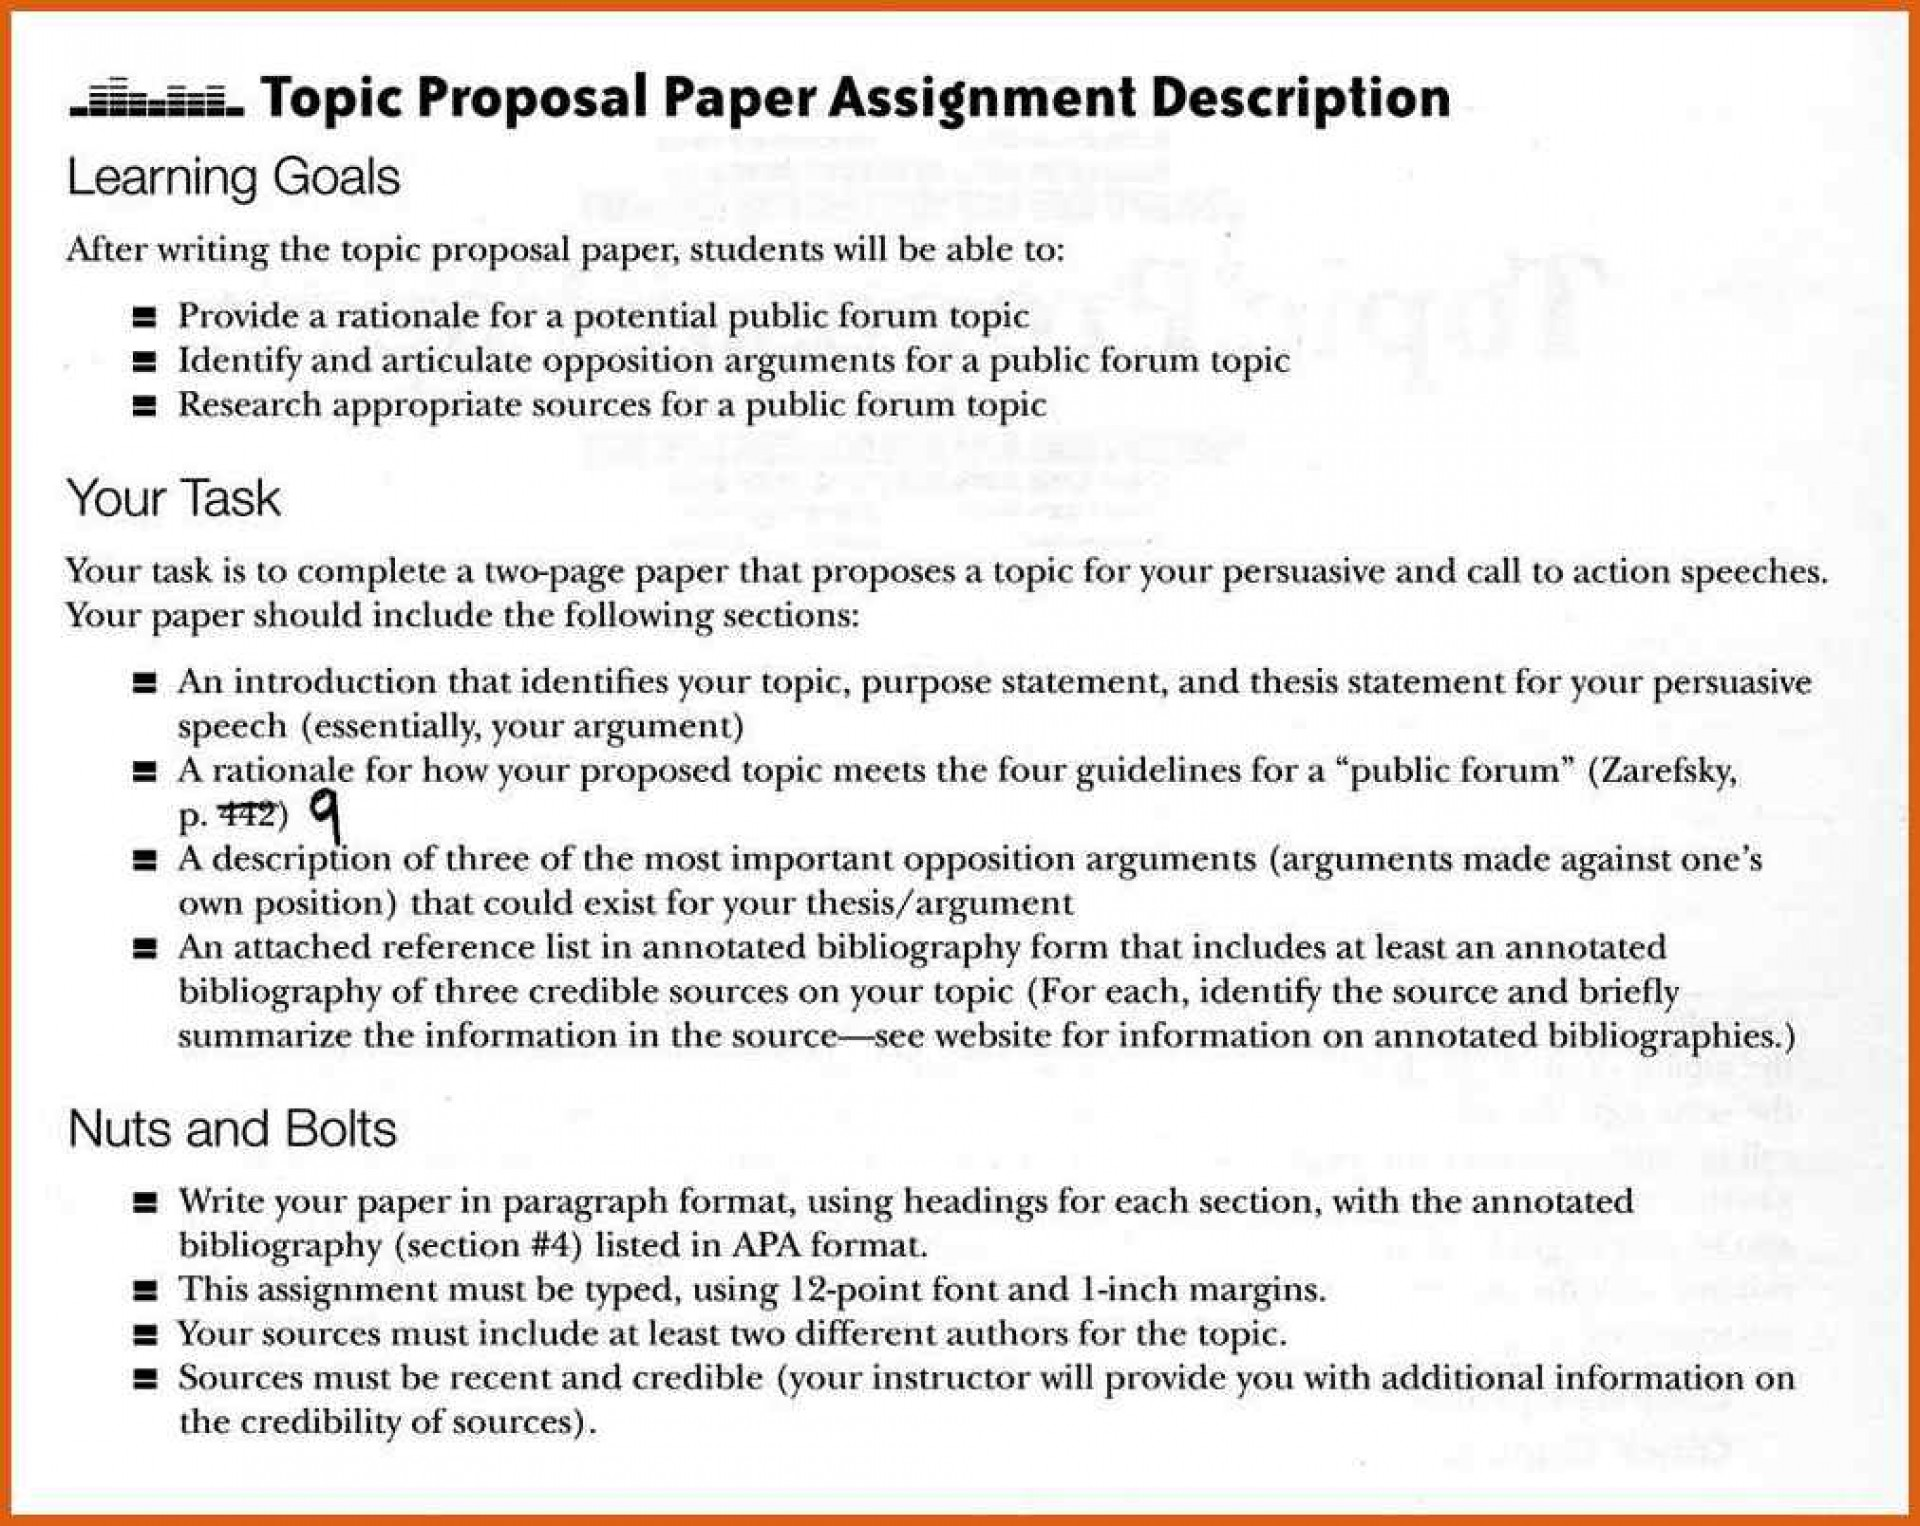 005 Essay Examplewesome Collection Of George Washington Paper College English Topics With Creative Research Proposal Inpa Format Remarkable University Prompts Bothell Prompt 2017 1920